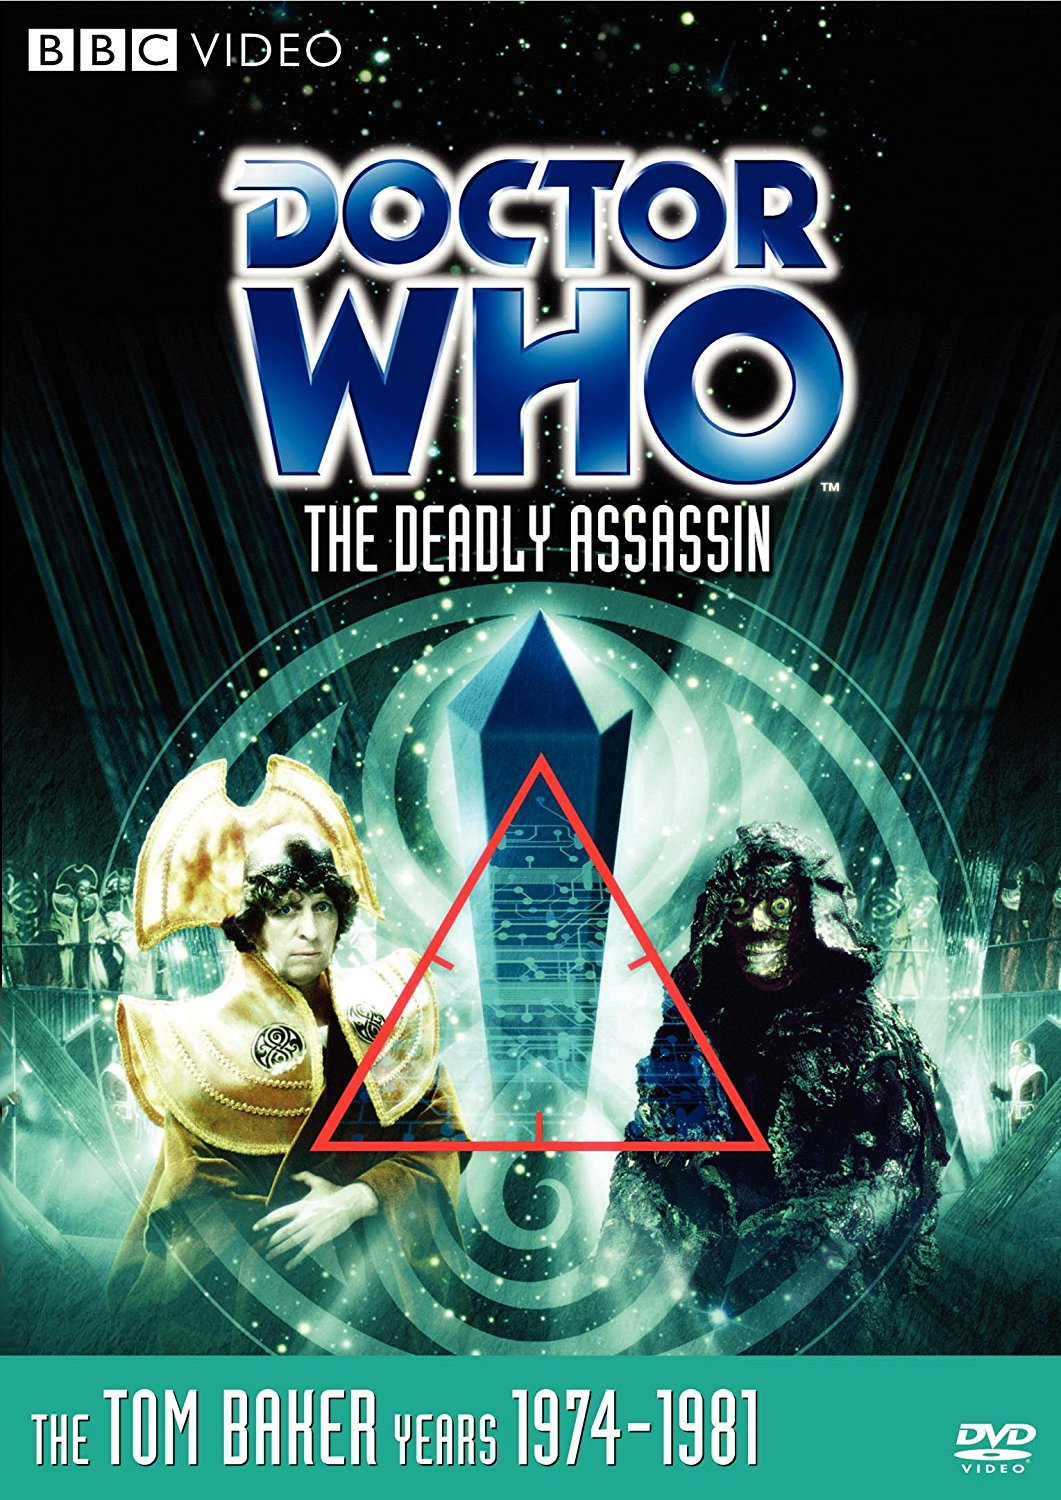 Doctor Who: The Deadly Assassin, starring Tom Baker, Peter Pratt